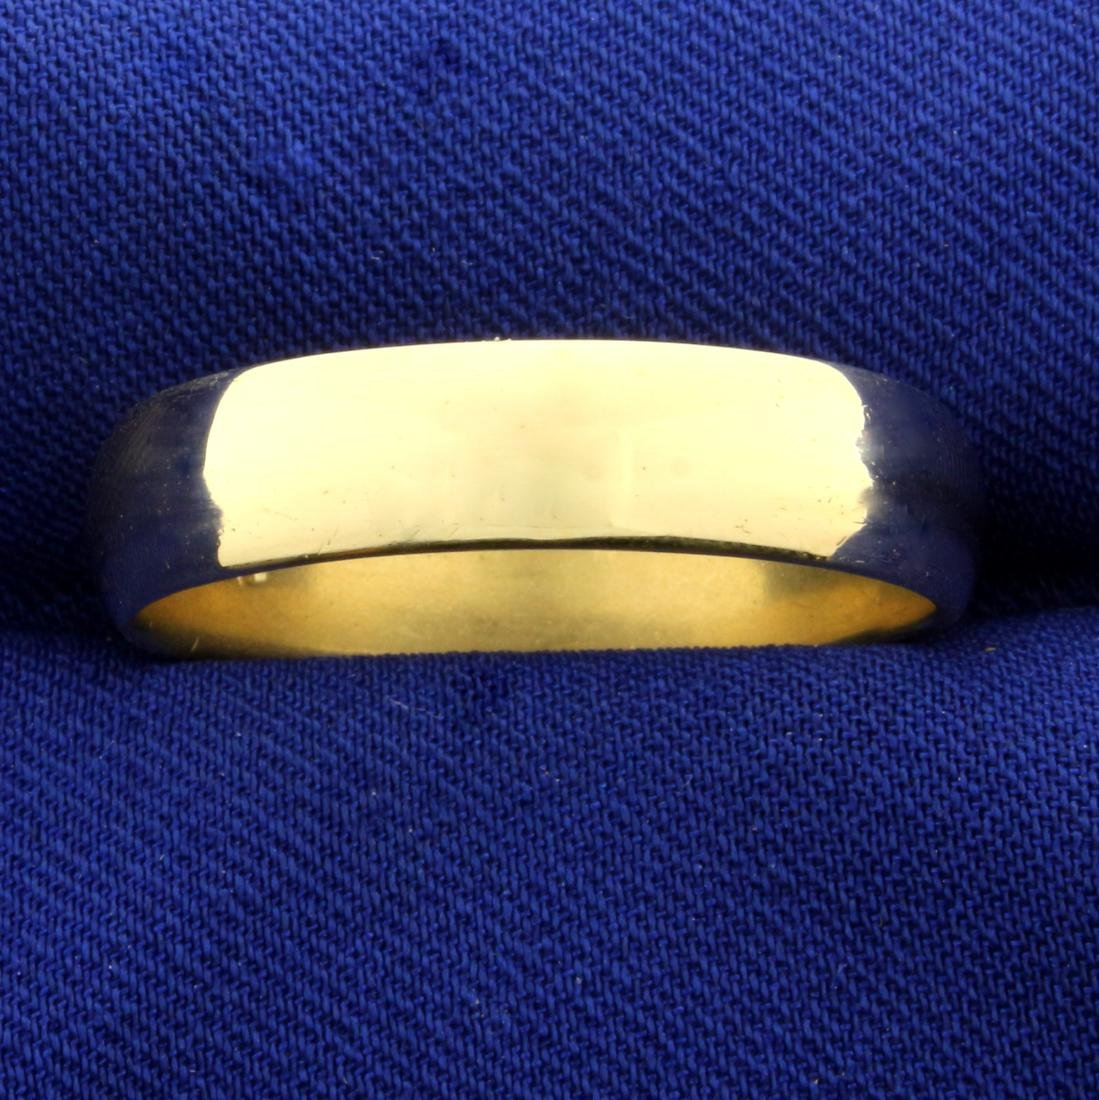 Men's Gold Wedding Band Ring in 14K Yellow Gold